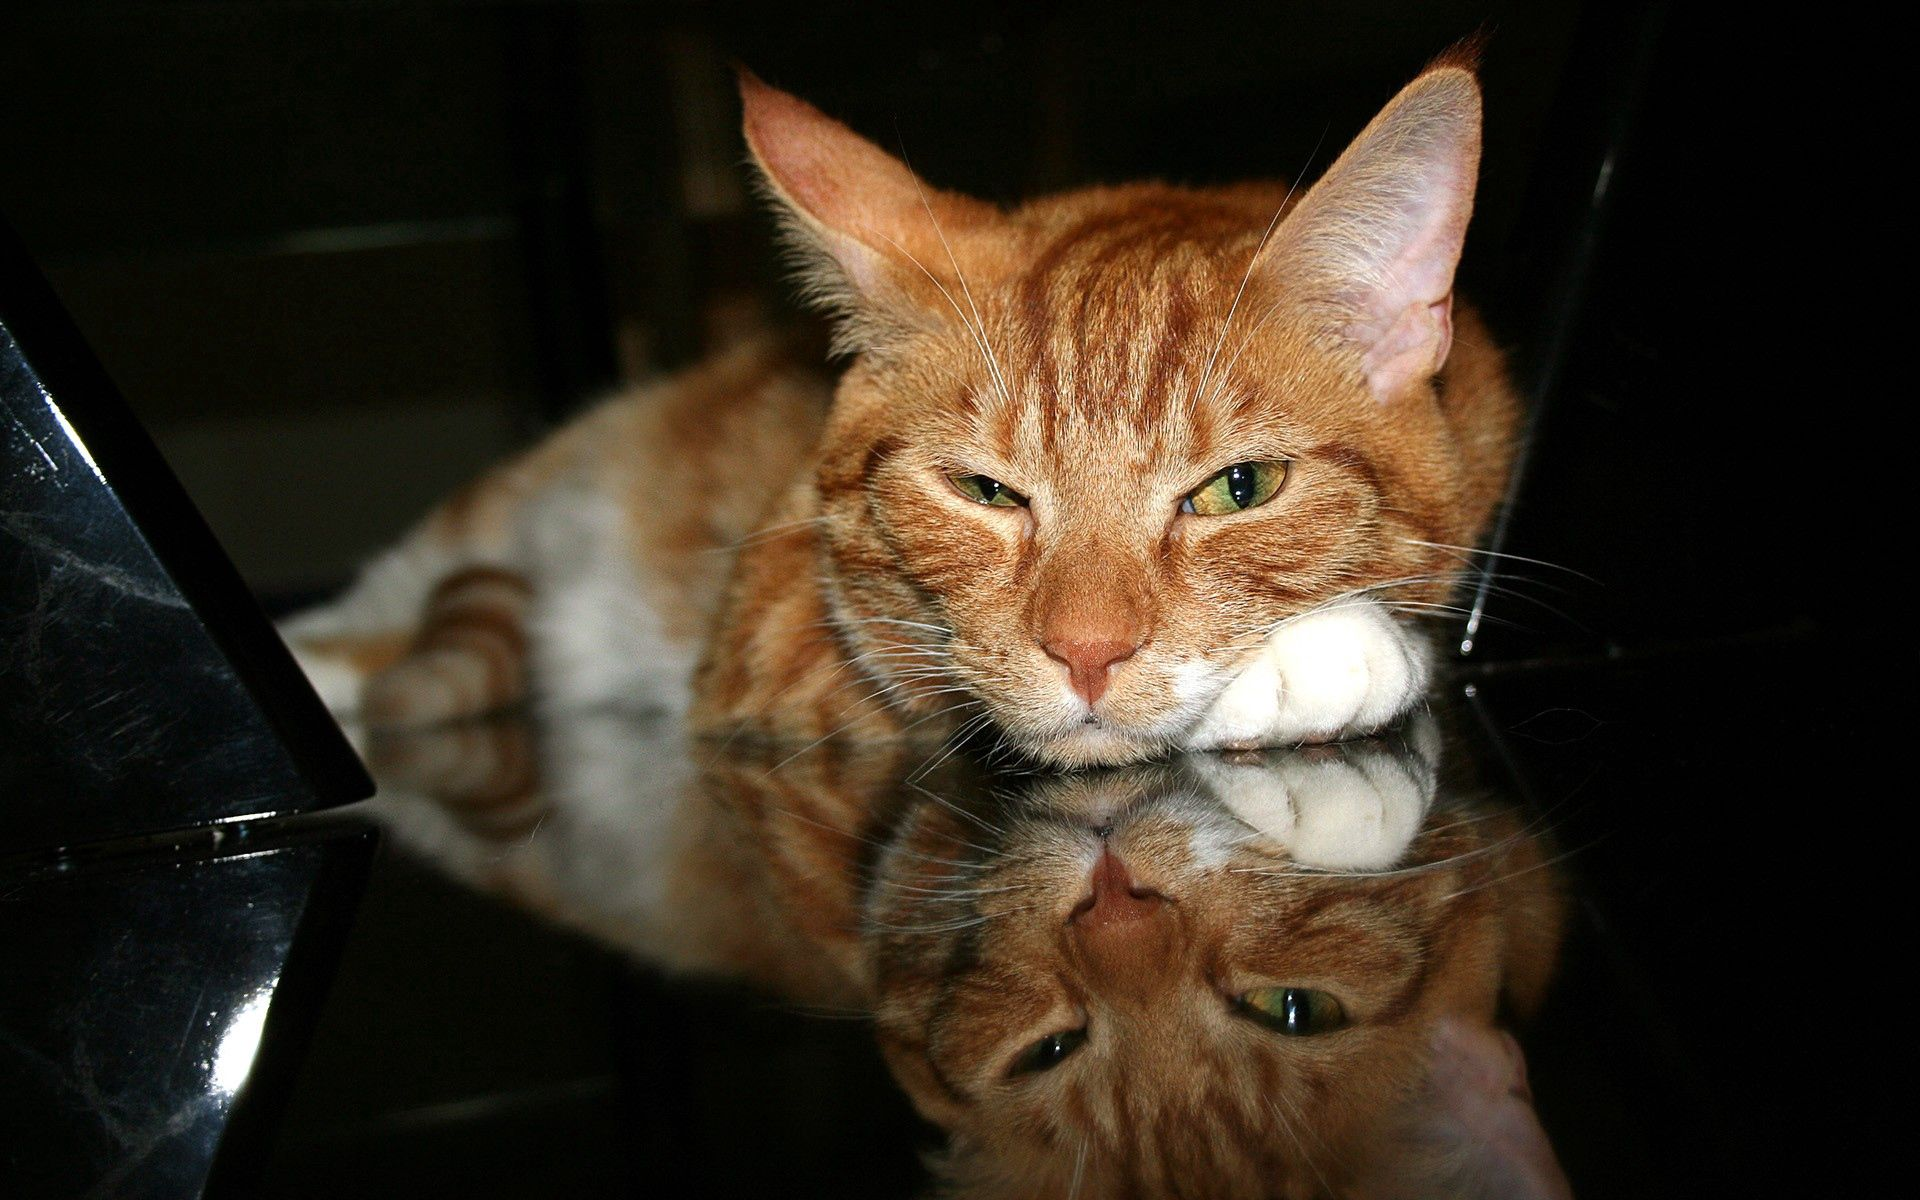 98384 download wallpaper Animals, Cat, Redhead, Muzzle, Tired, Paw screensavers and pictures for free